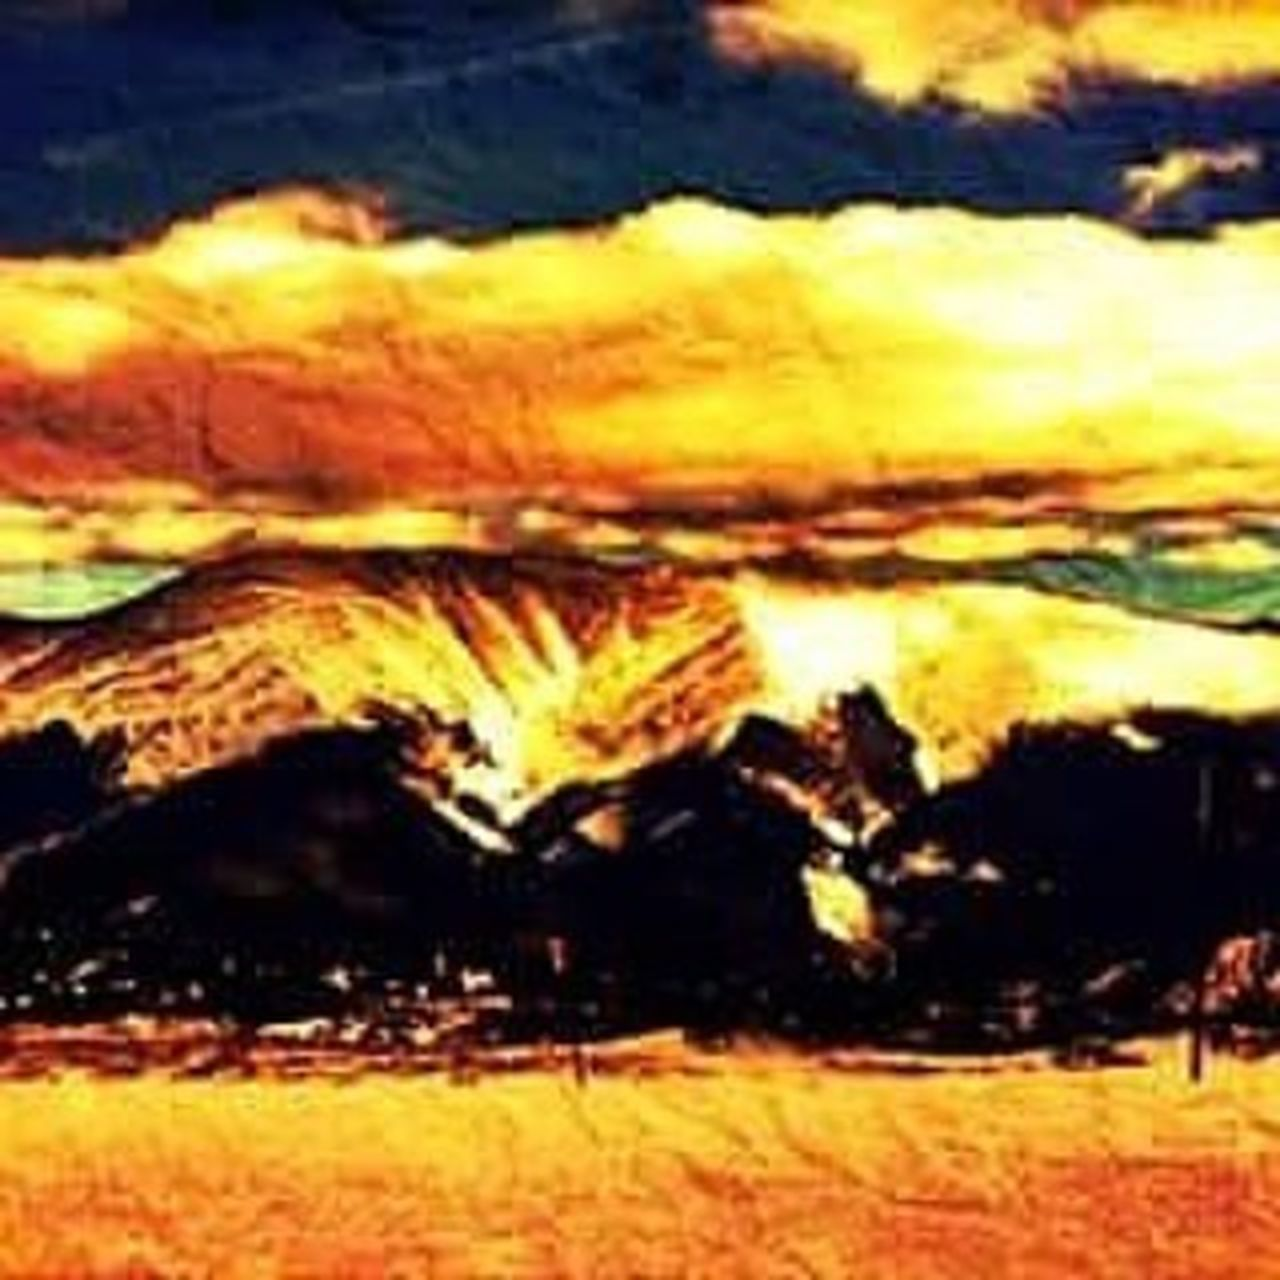 Mountain Mountains Mountainrange Skiing Ski Skiingislife Snow Snowboarding Winterpark Wild Heavyedits Photoedit Paper Fence Mountainface Coloradoskicountry Colorado Sky Skyporn Clouds Perfectlighting Gnat Photo Like4like Followforfollow awesome Damn imgood